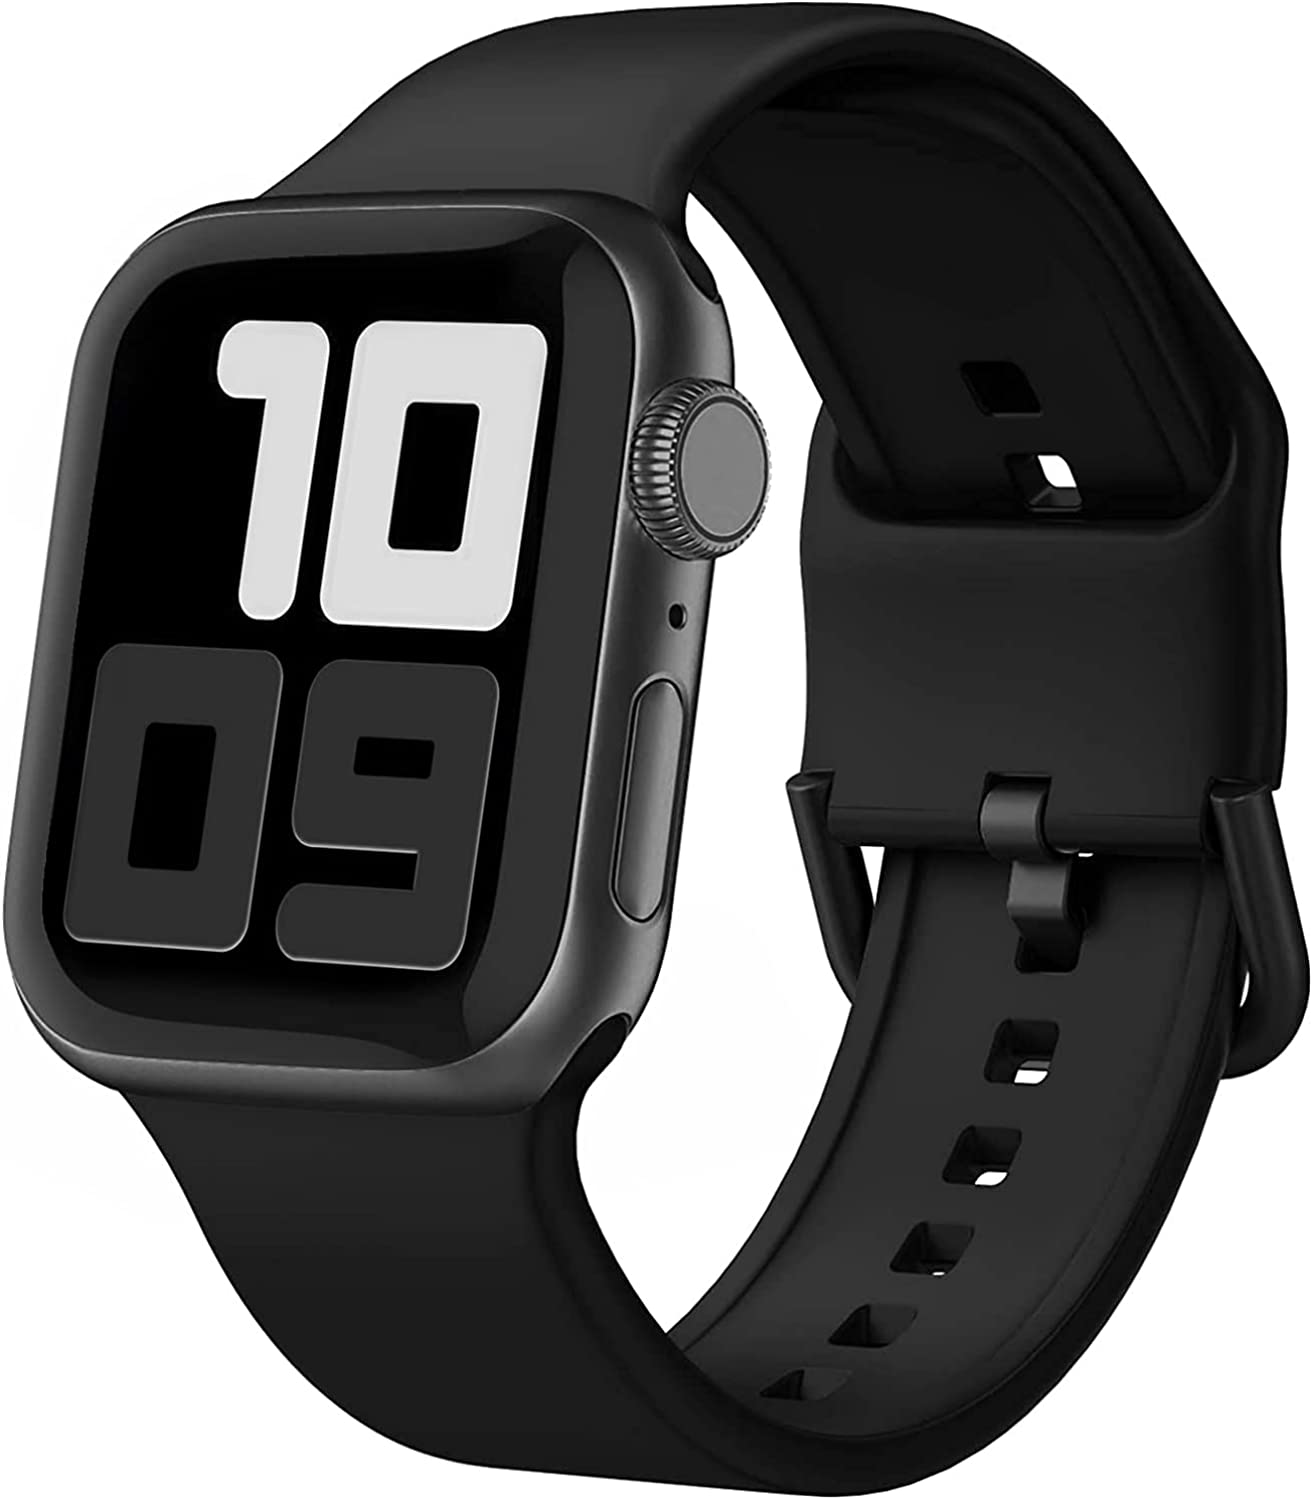 Blduzn Compatible with Apple Watch Bands 38mm 40mm 42mm 44mm, Soft Silicone Sport Wristbands Replacement Strap with Classic Clasp Compatible with iWatch Series SE 6 5 4 3 2 1